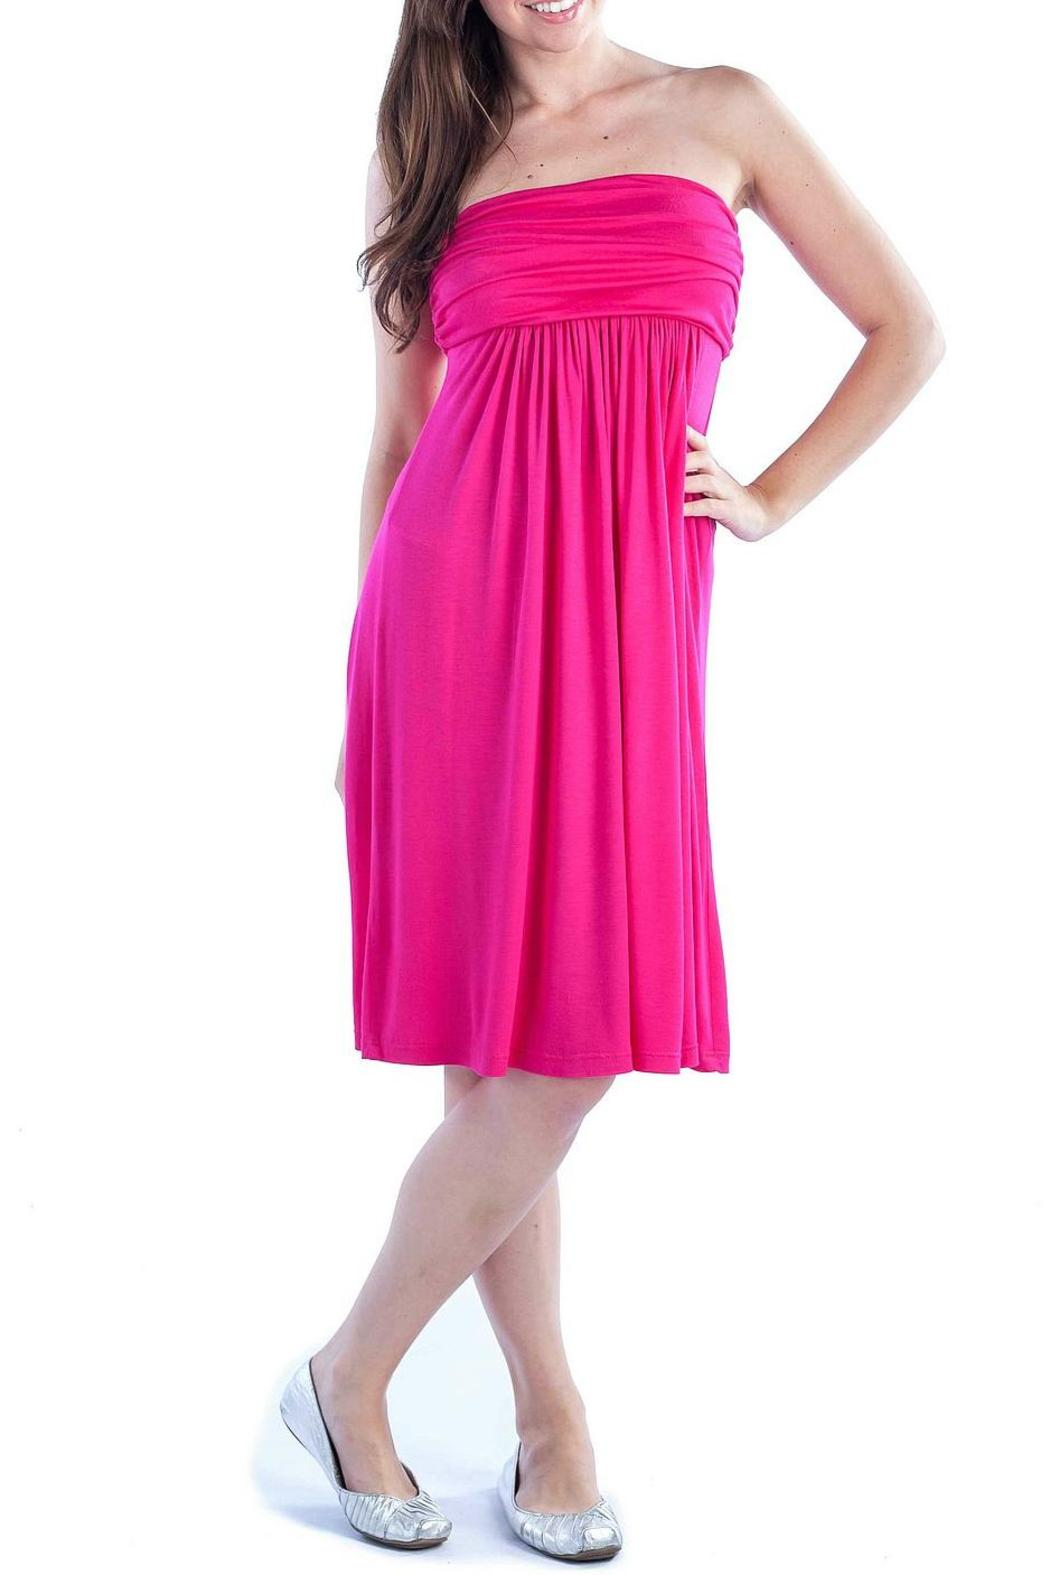 24/7 Comfort Apparel Empire-Tube Strapless Dress - Front Cropped Image